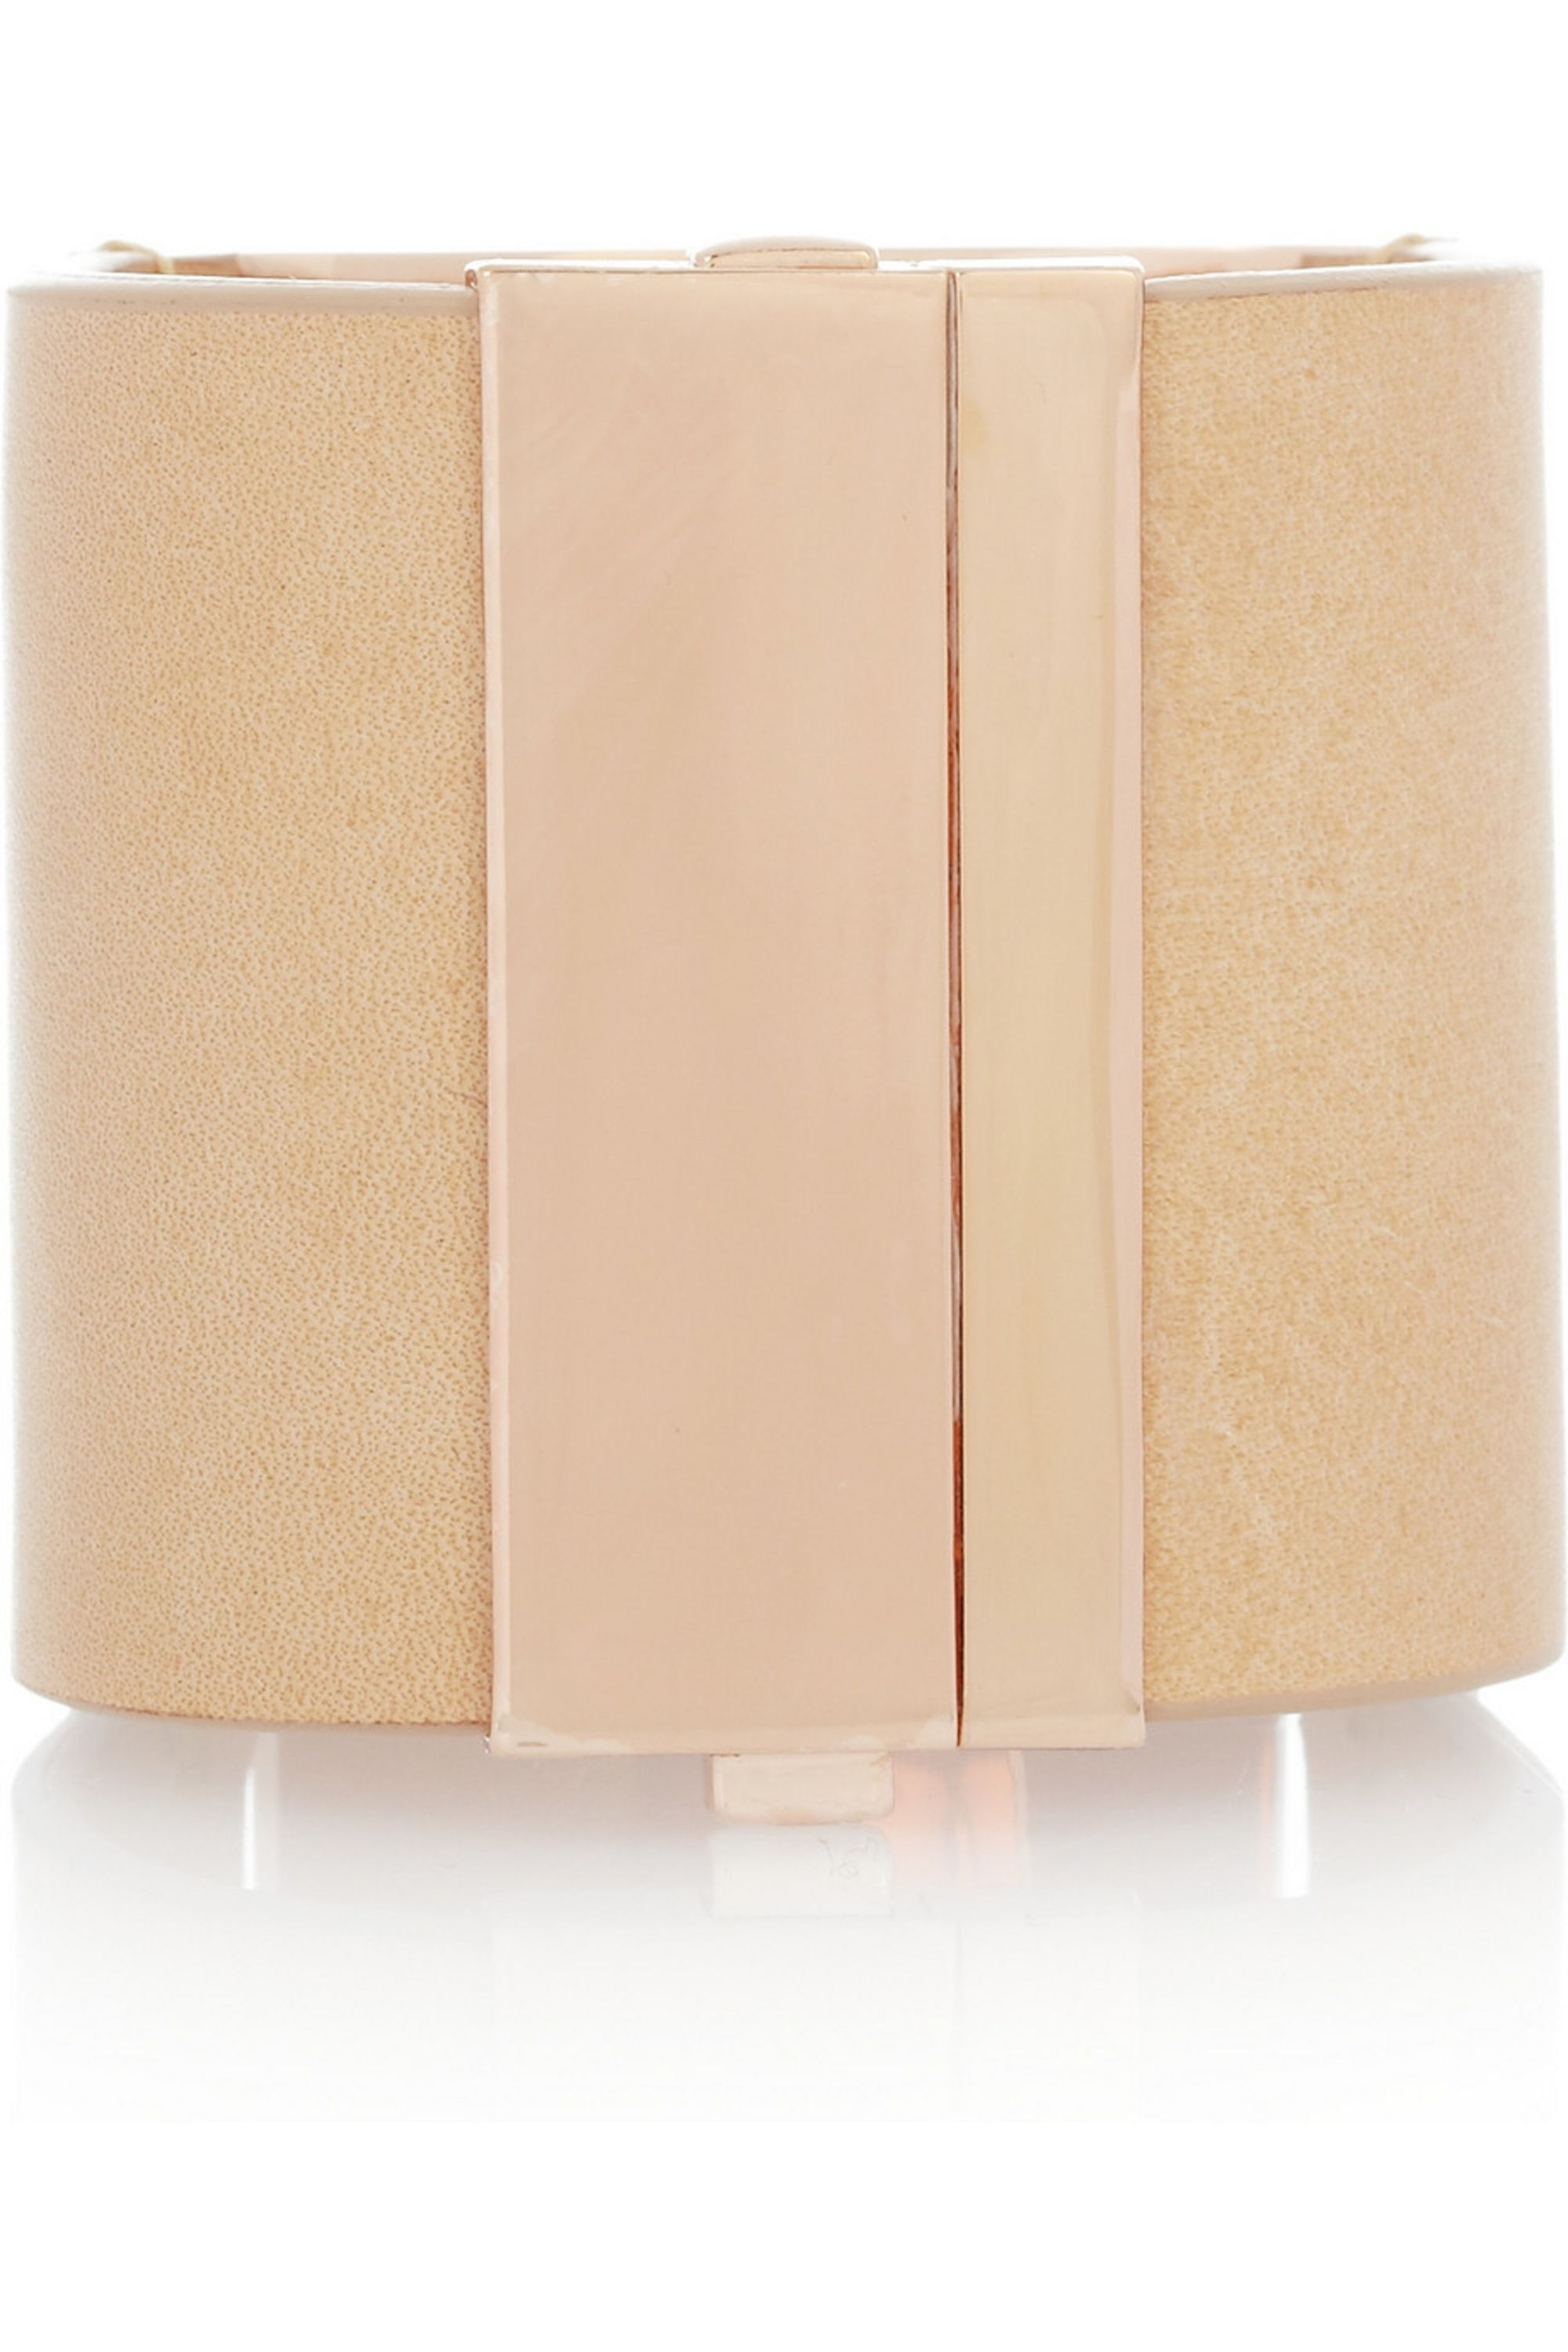 Maison Margiela Rose gold-plated and leather cuff